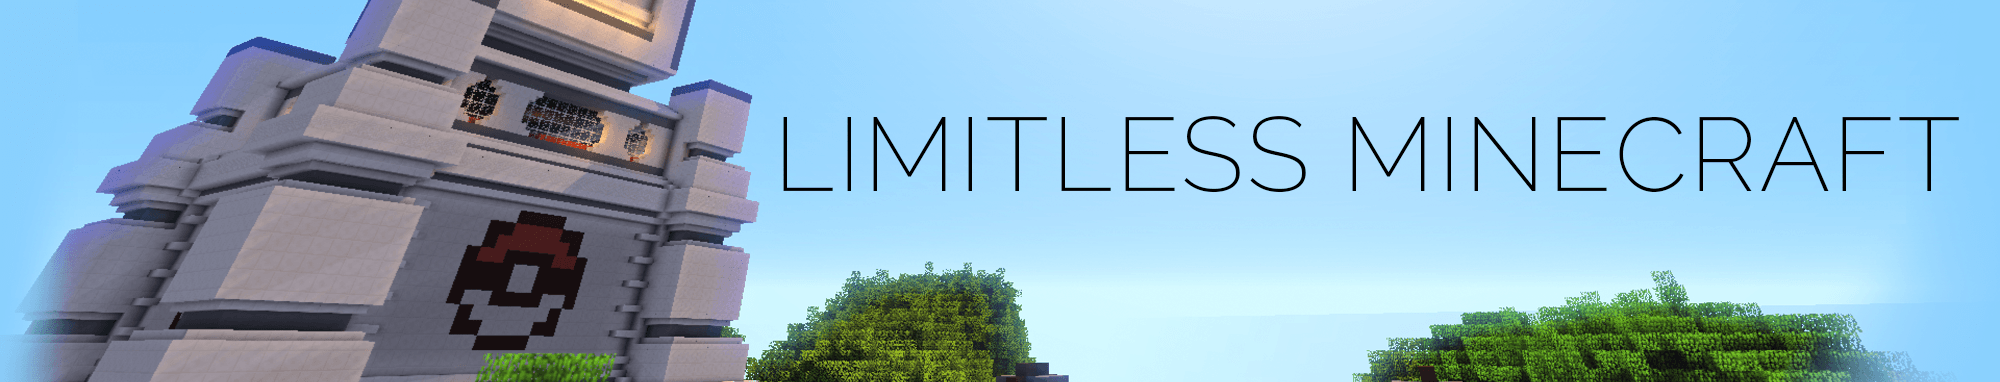 Limitless Minecraft